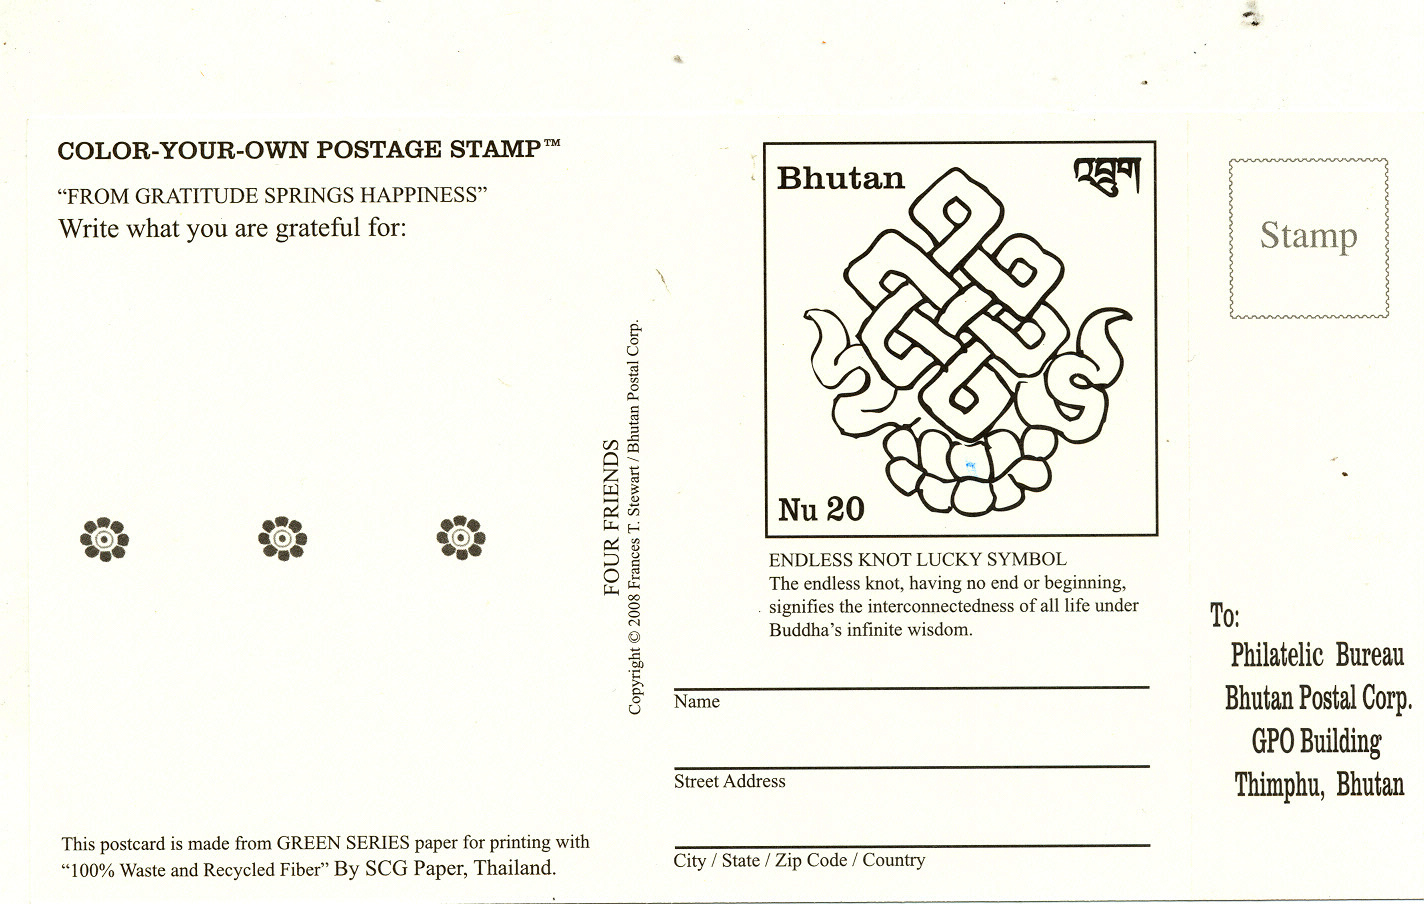 Beautiful Imprinted Color Your Own Postage Stamp Showing A Endless Knot How Much Are Postcard Stamps 2017 Postcard Stamps Usps Bhutan Postcard inspiration Post Card Stamps